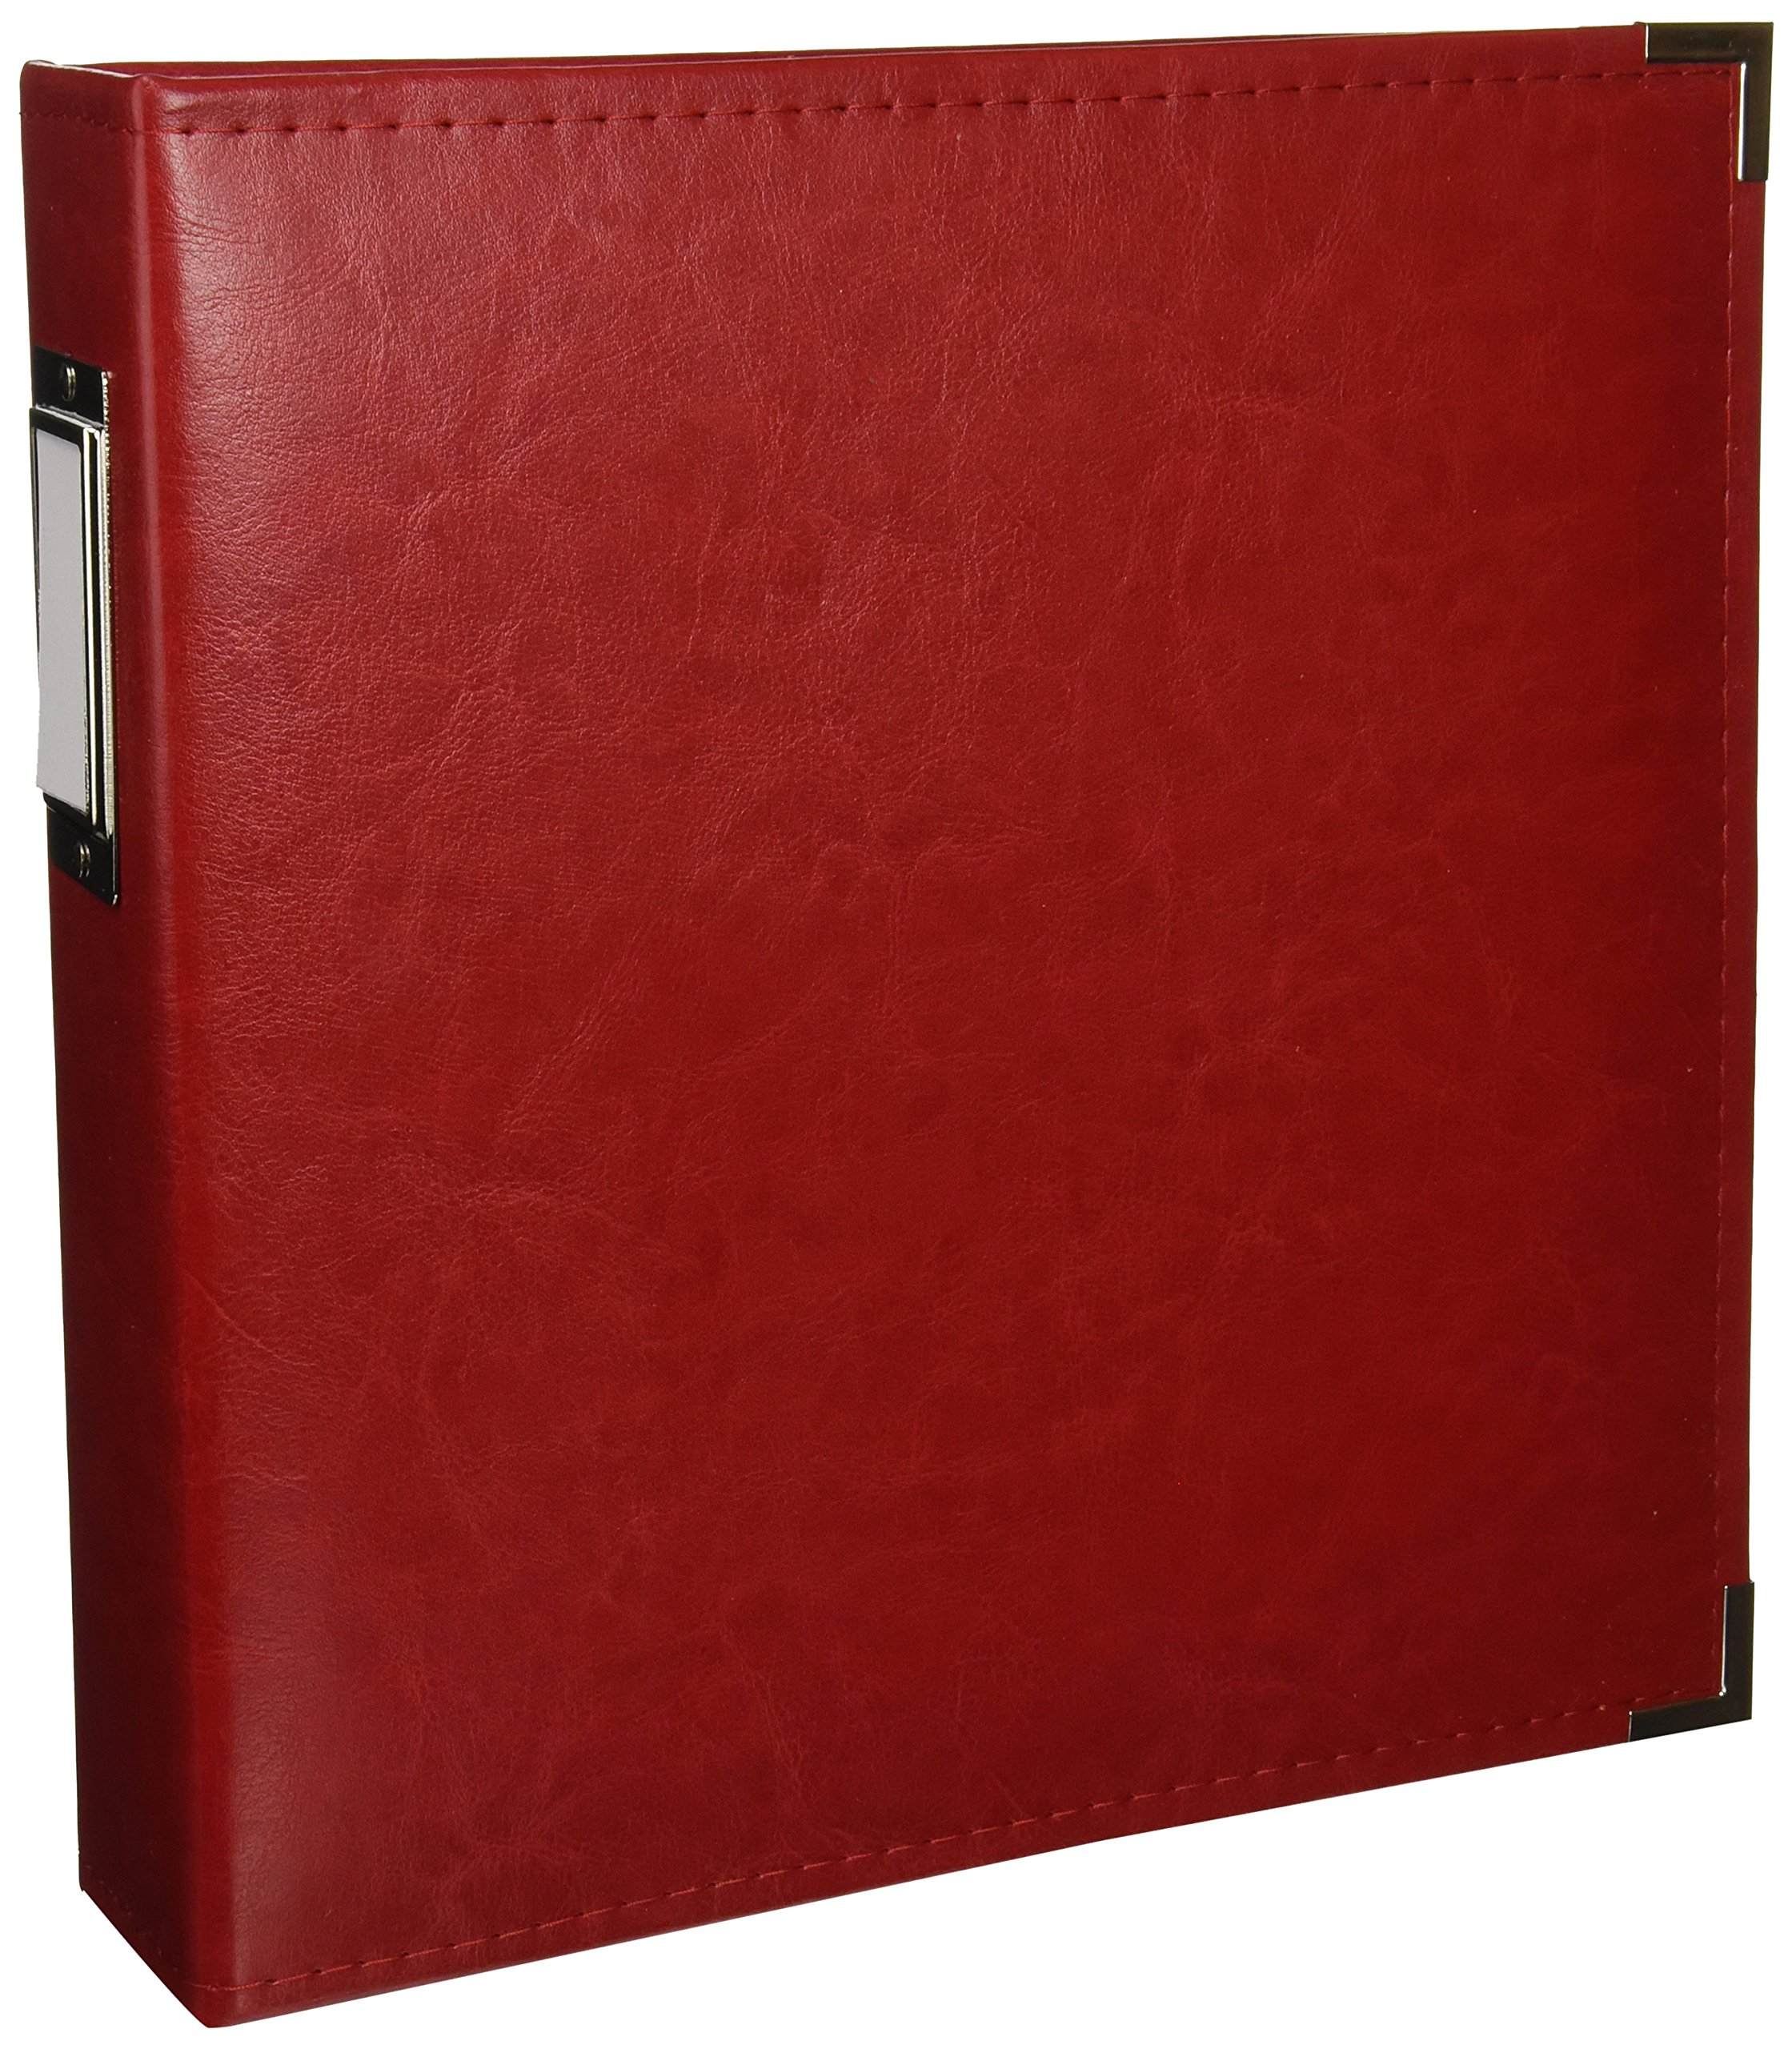 8.5 x 11-inch Classic Leather 3-Ring Album by We R Memory Keepers   Real Red, includes 5 page protectors by We R Memory Keepers